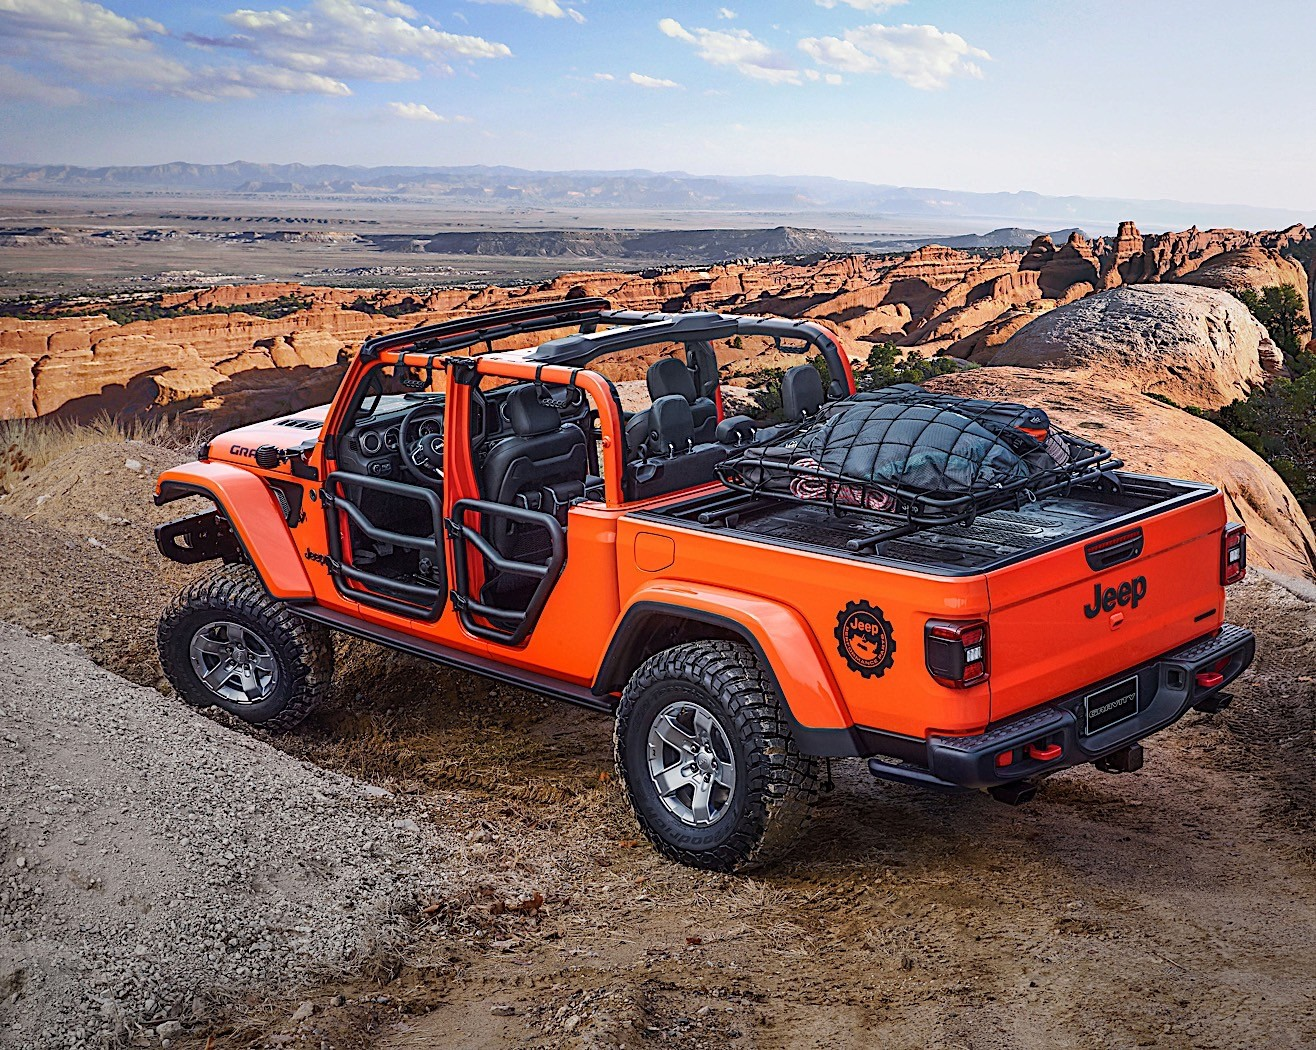 Hellcat V8 Fits Like A Glove In The Jeep Wrangler